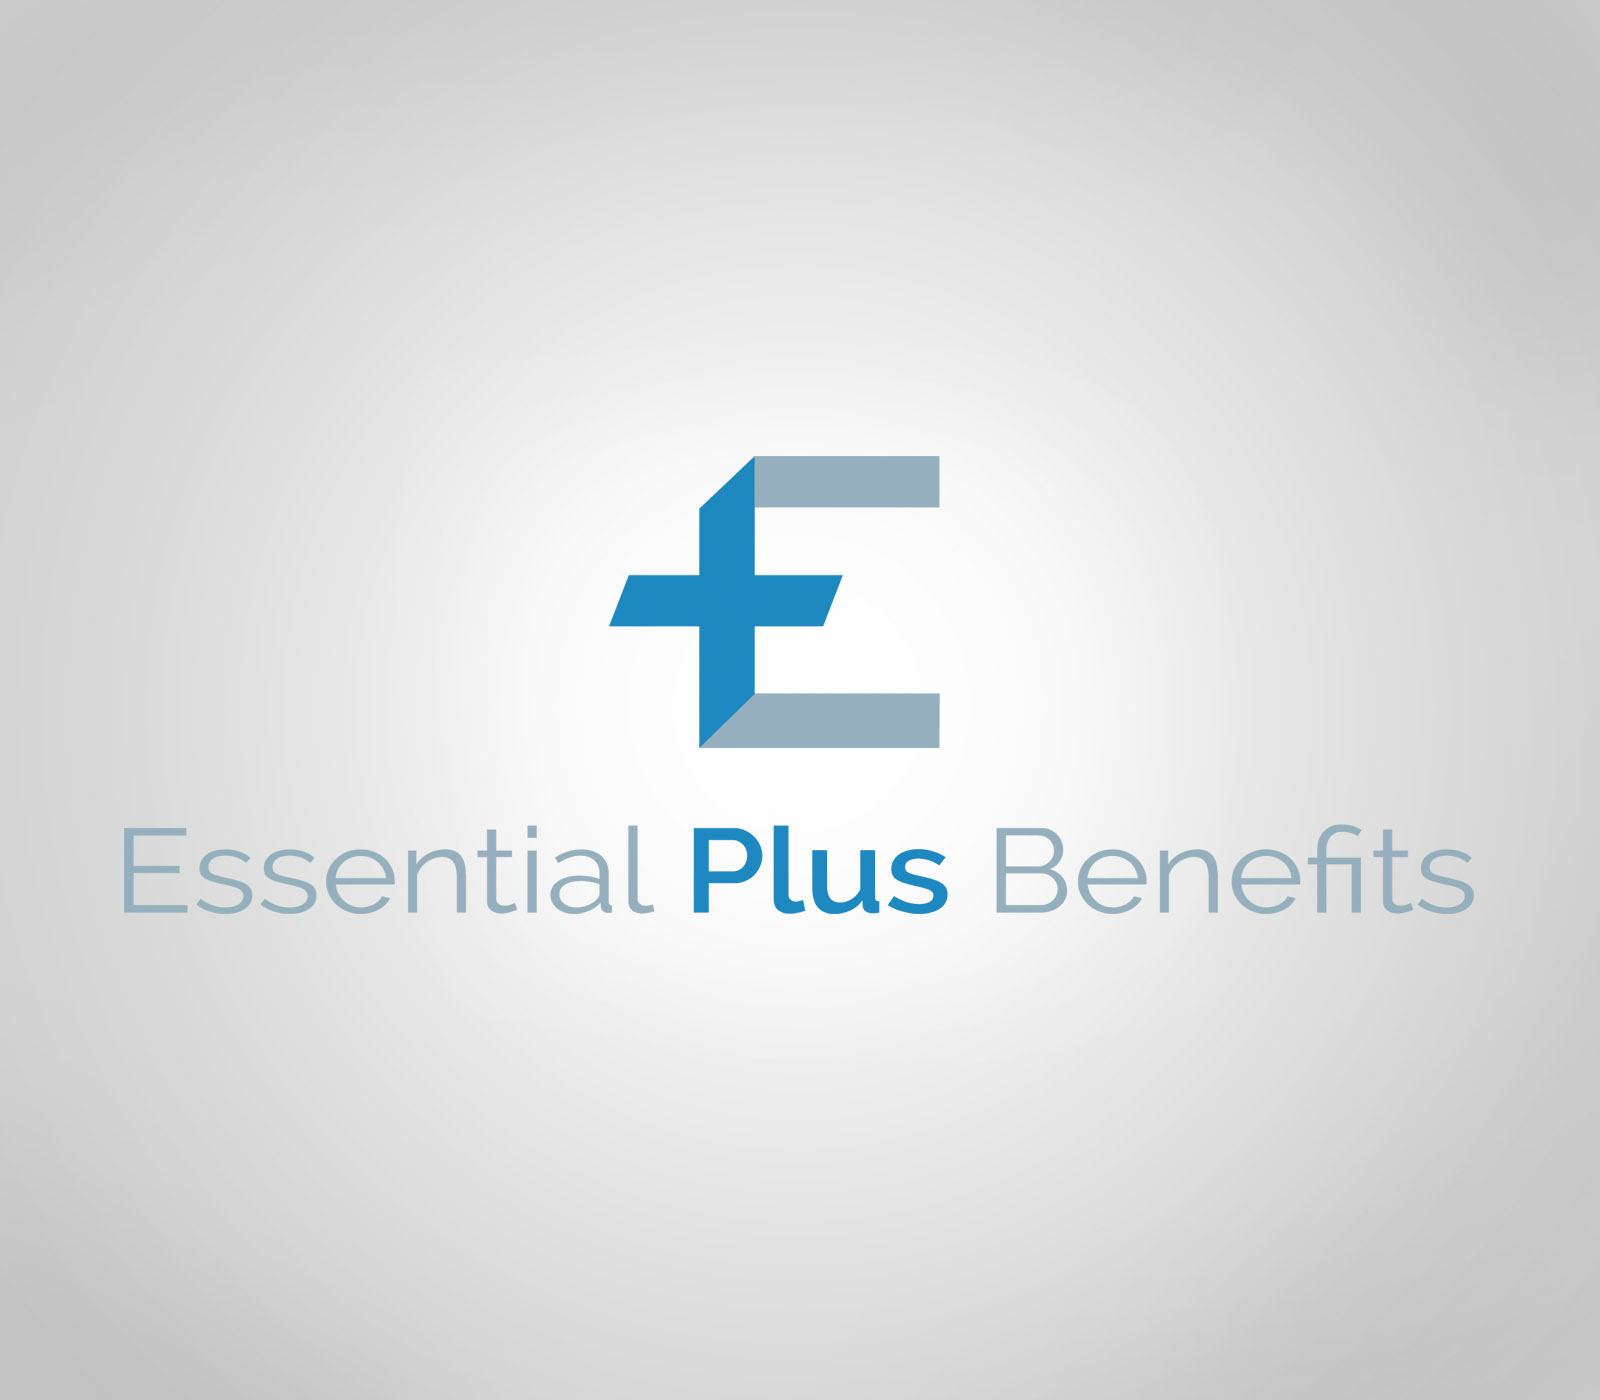 Essential Plus Benefits Logo